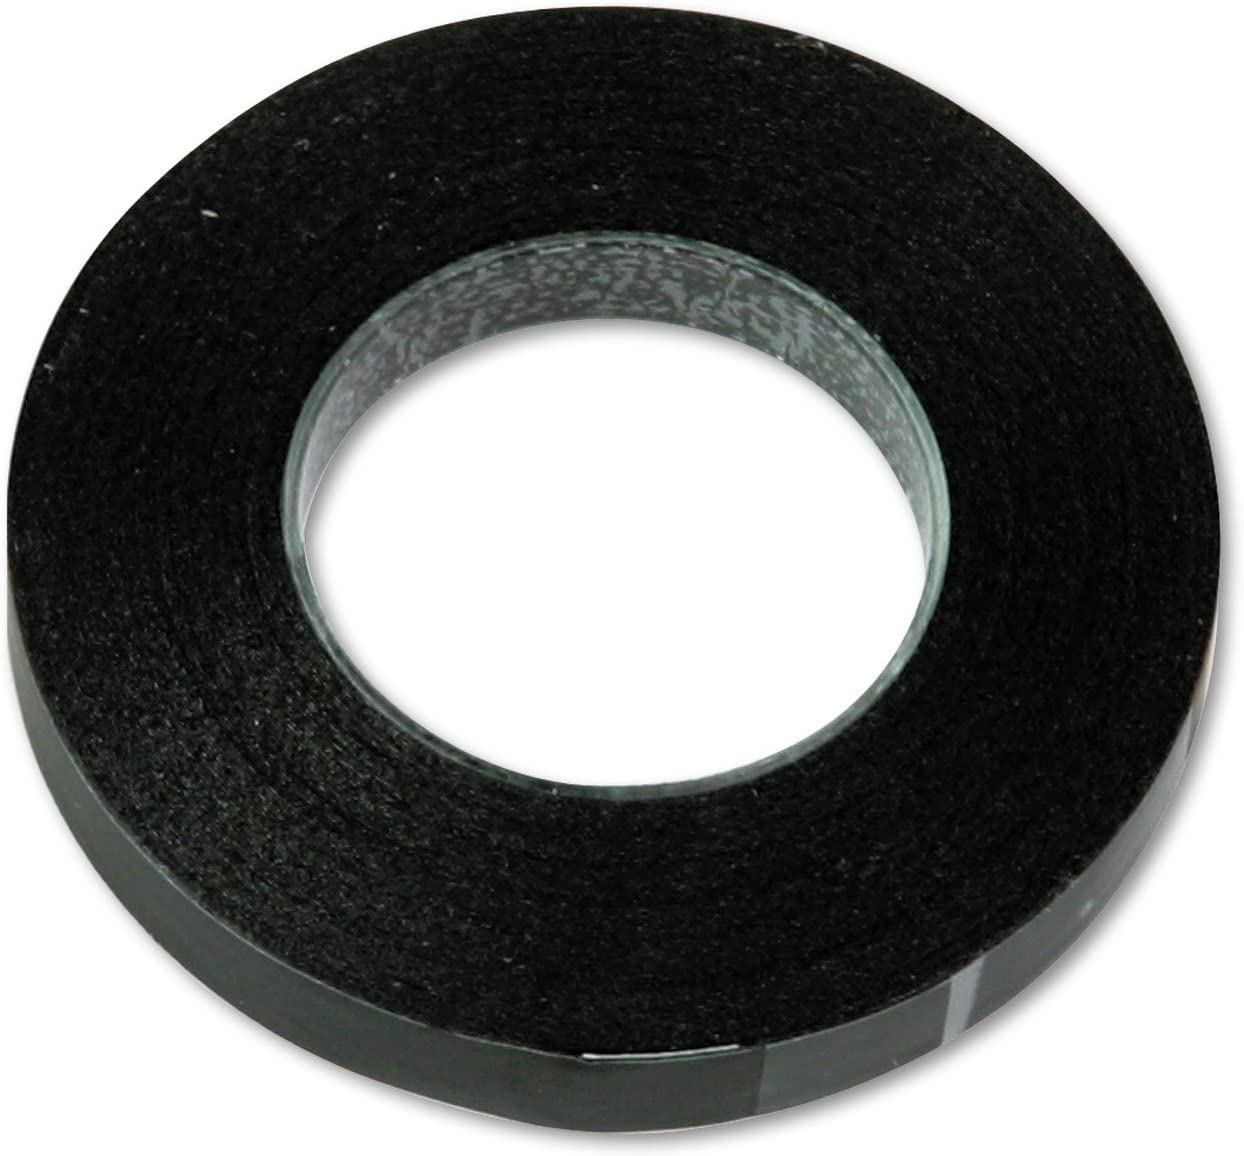 Total of 2 Each 1 1//4 x 324 Chartpak : Graphic Chart Tape // Matte Black -:- Sold as 2 Packs of